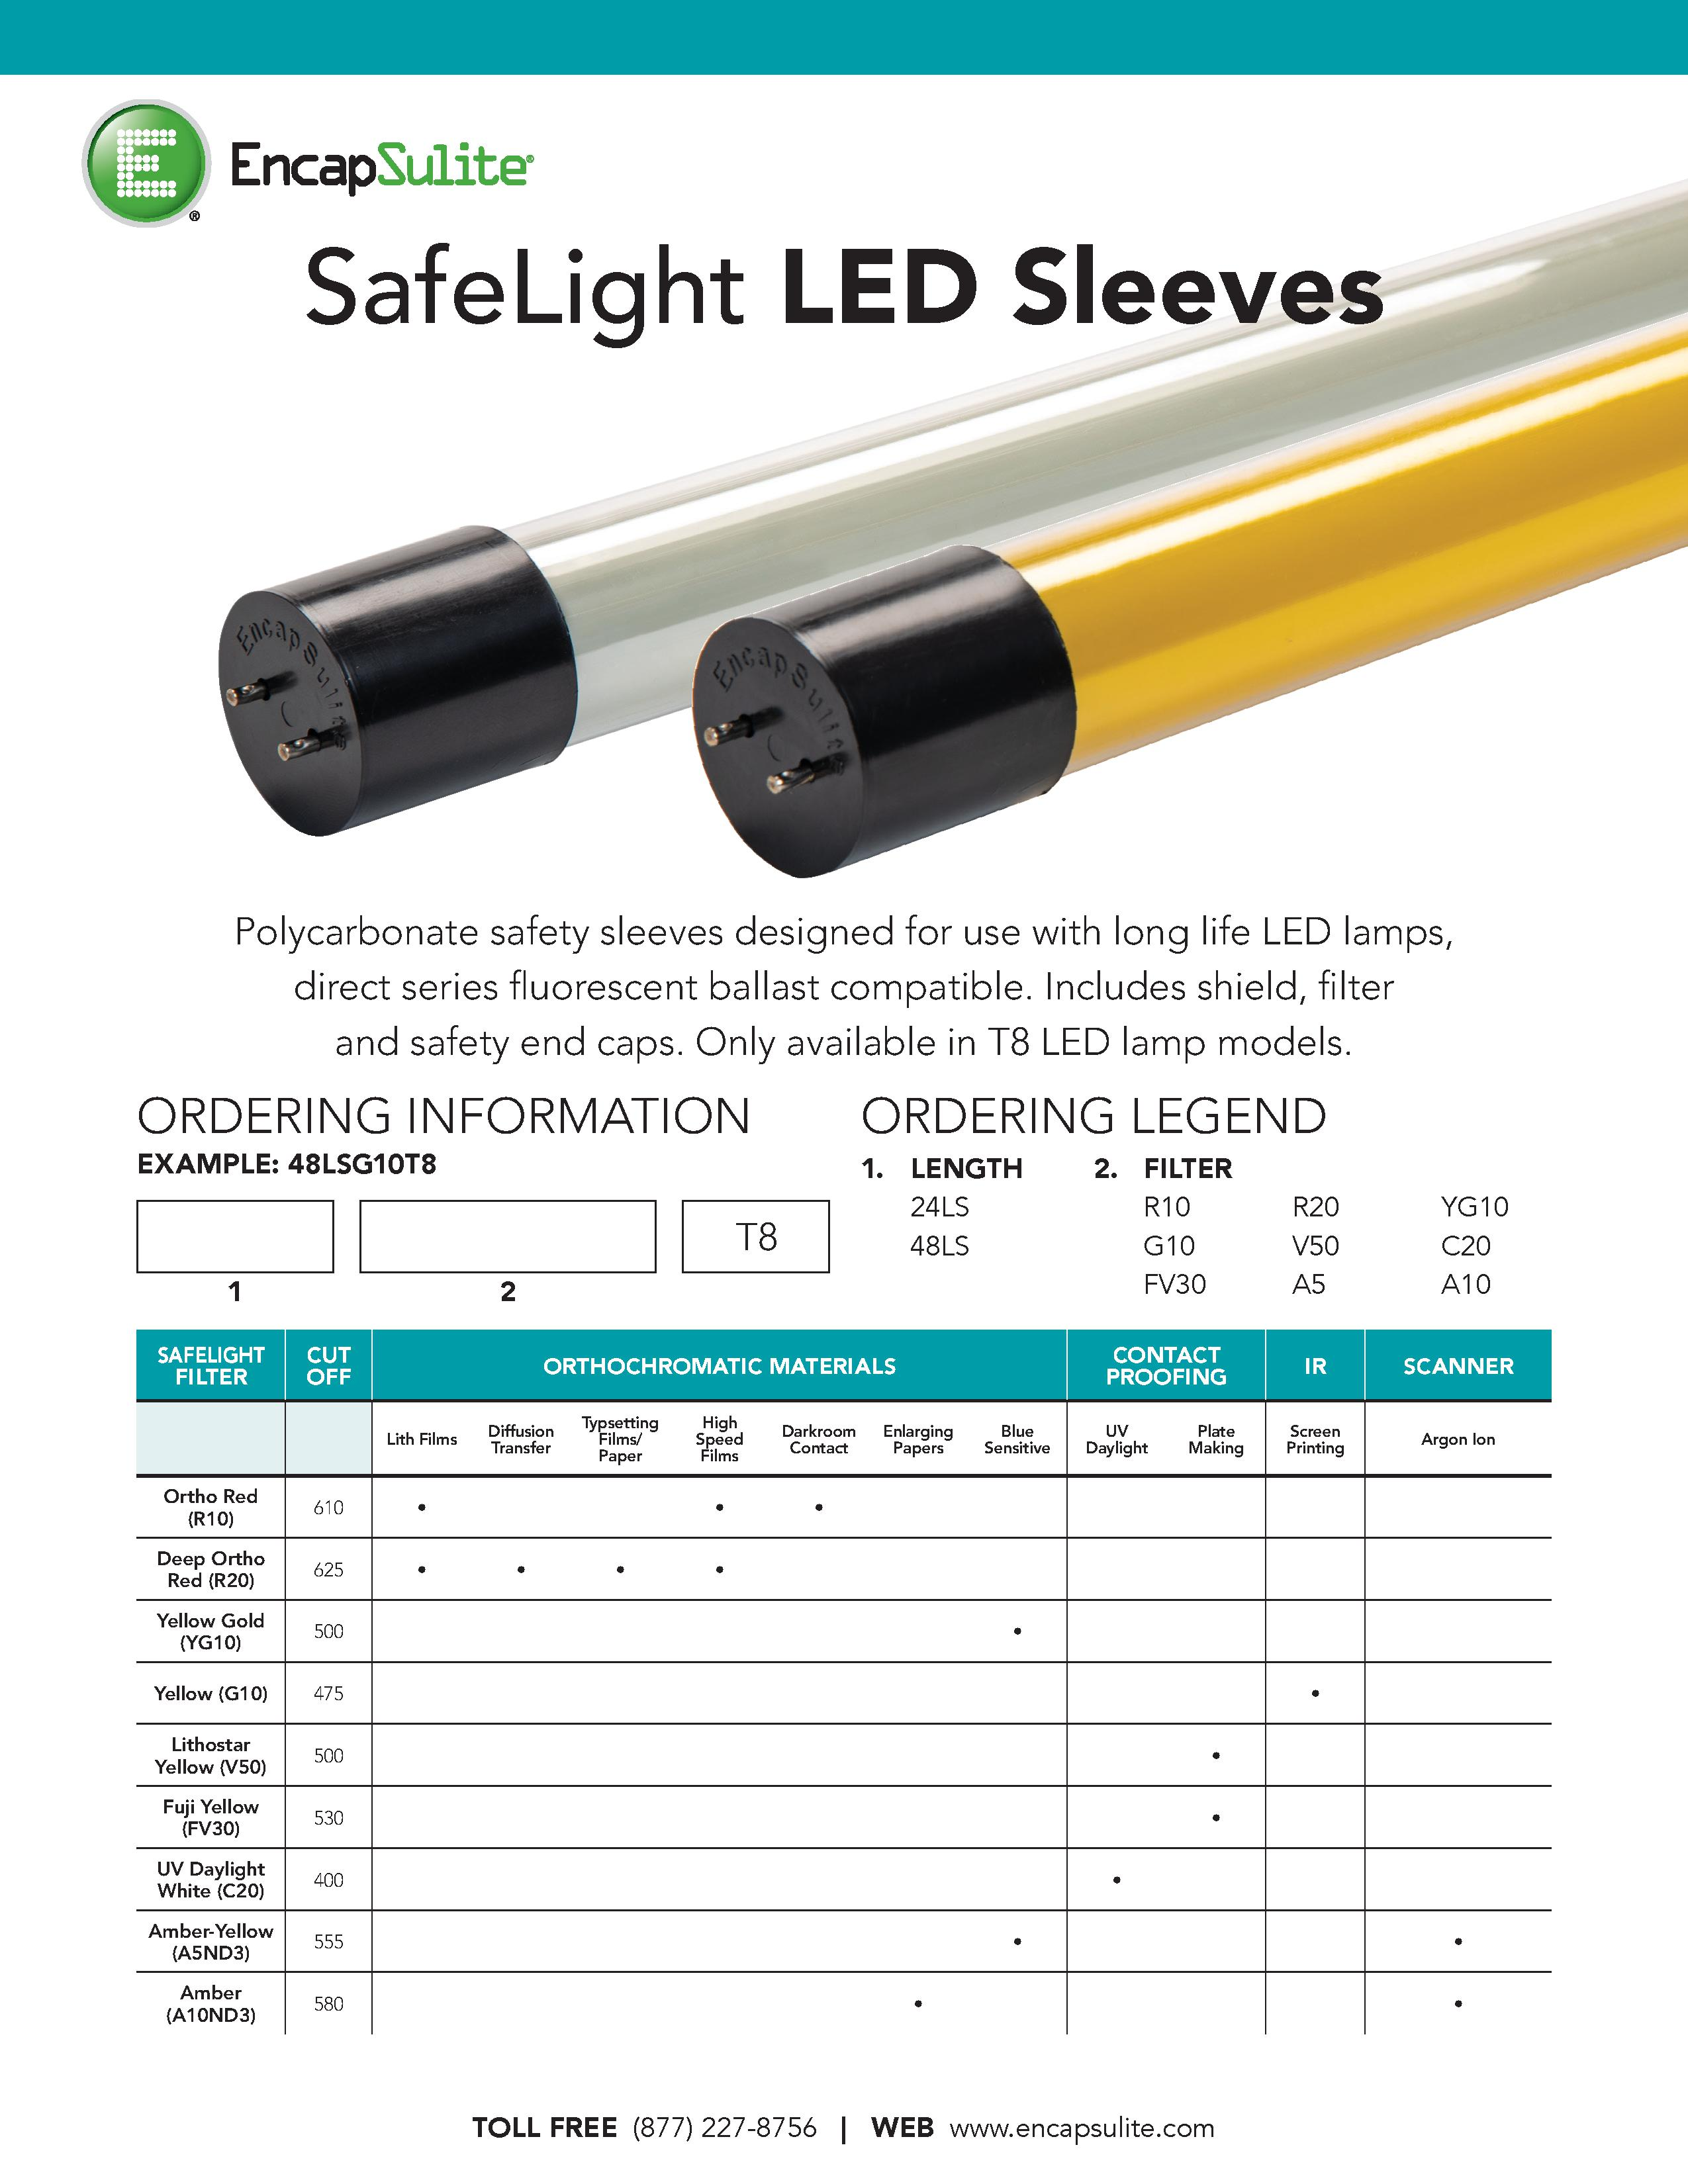 SafeLight LED Sleeve Specification